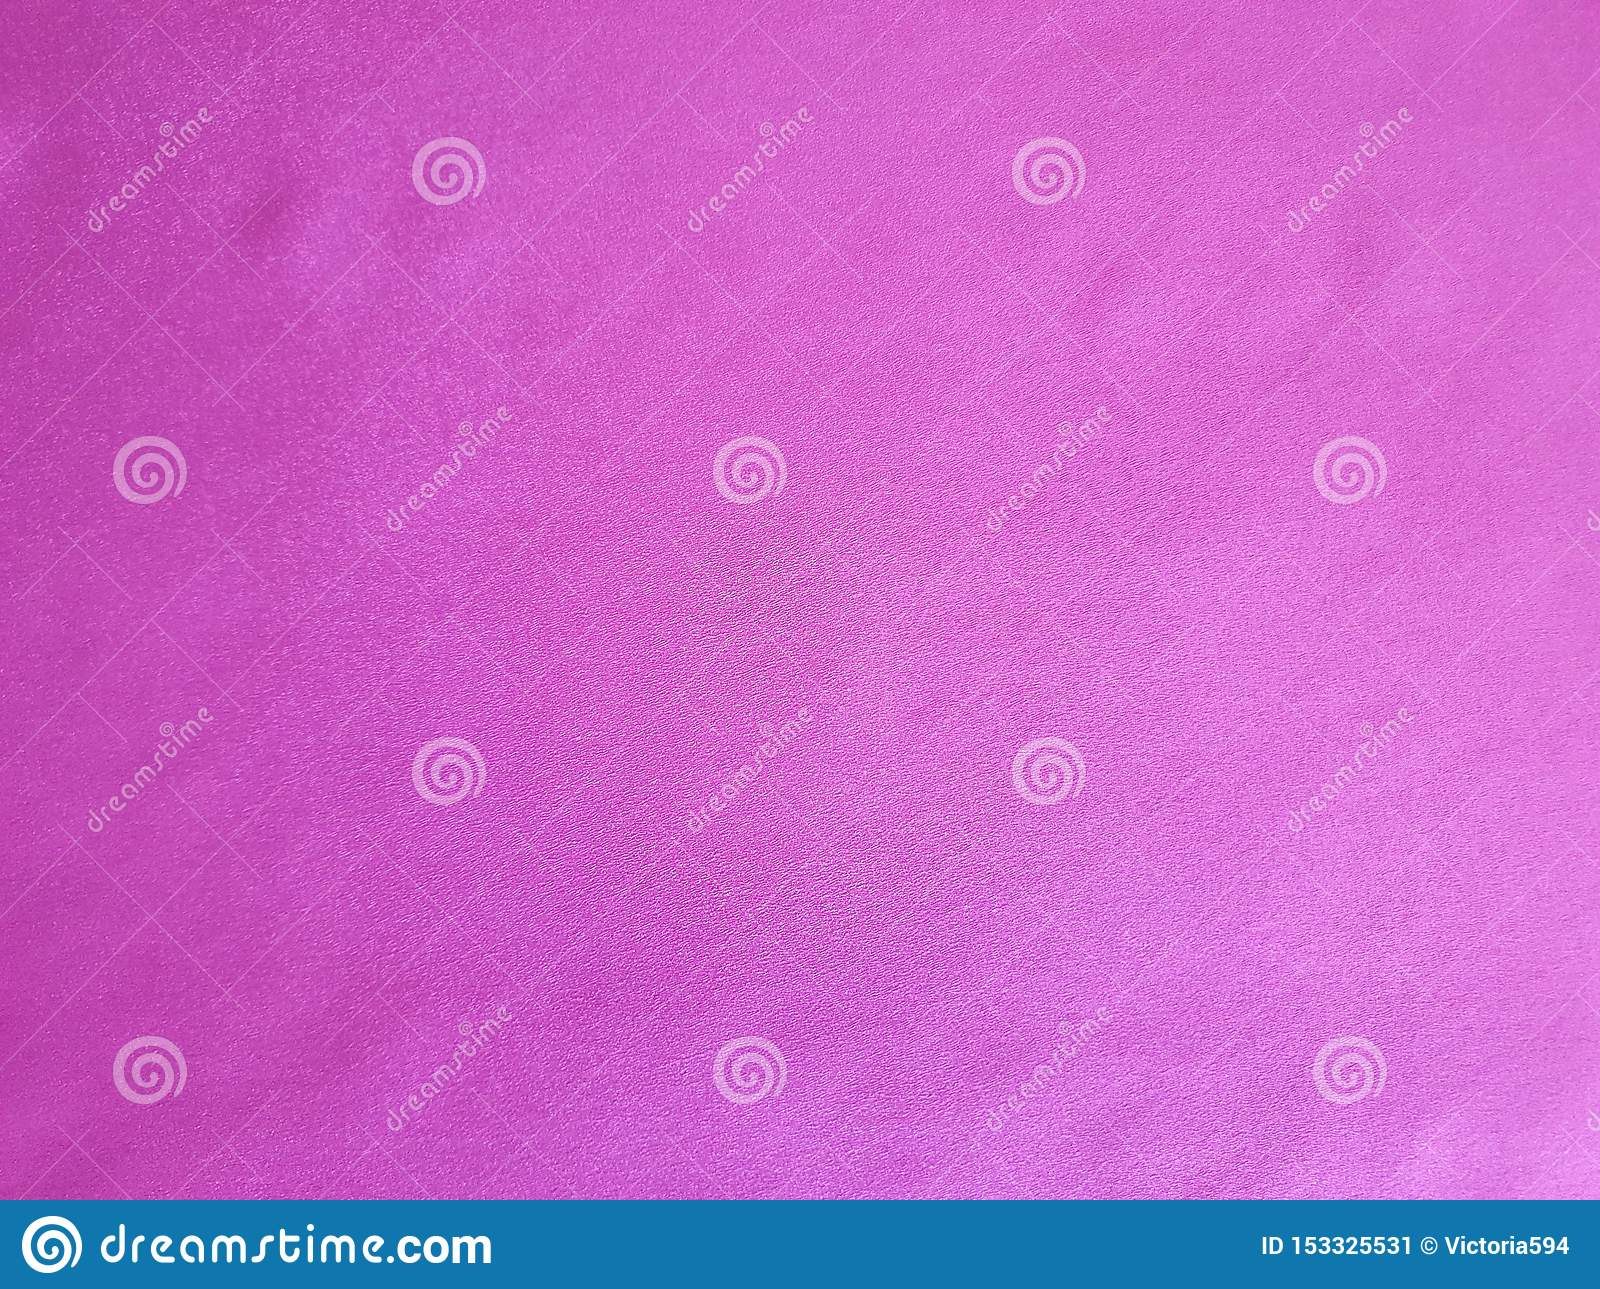 Pattern, texture, background, wallpaper. Soft lilac color fabric, light, airy, a bit glossy and shinny. Fragile and refined